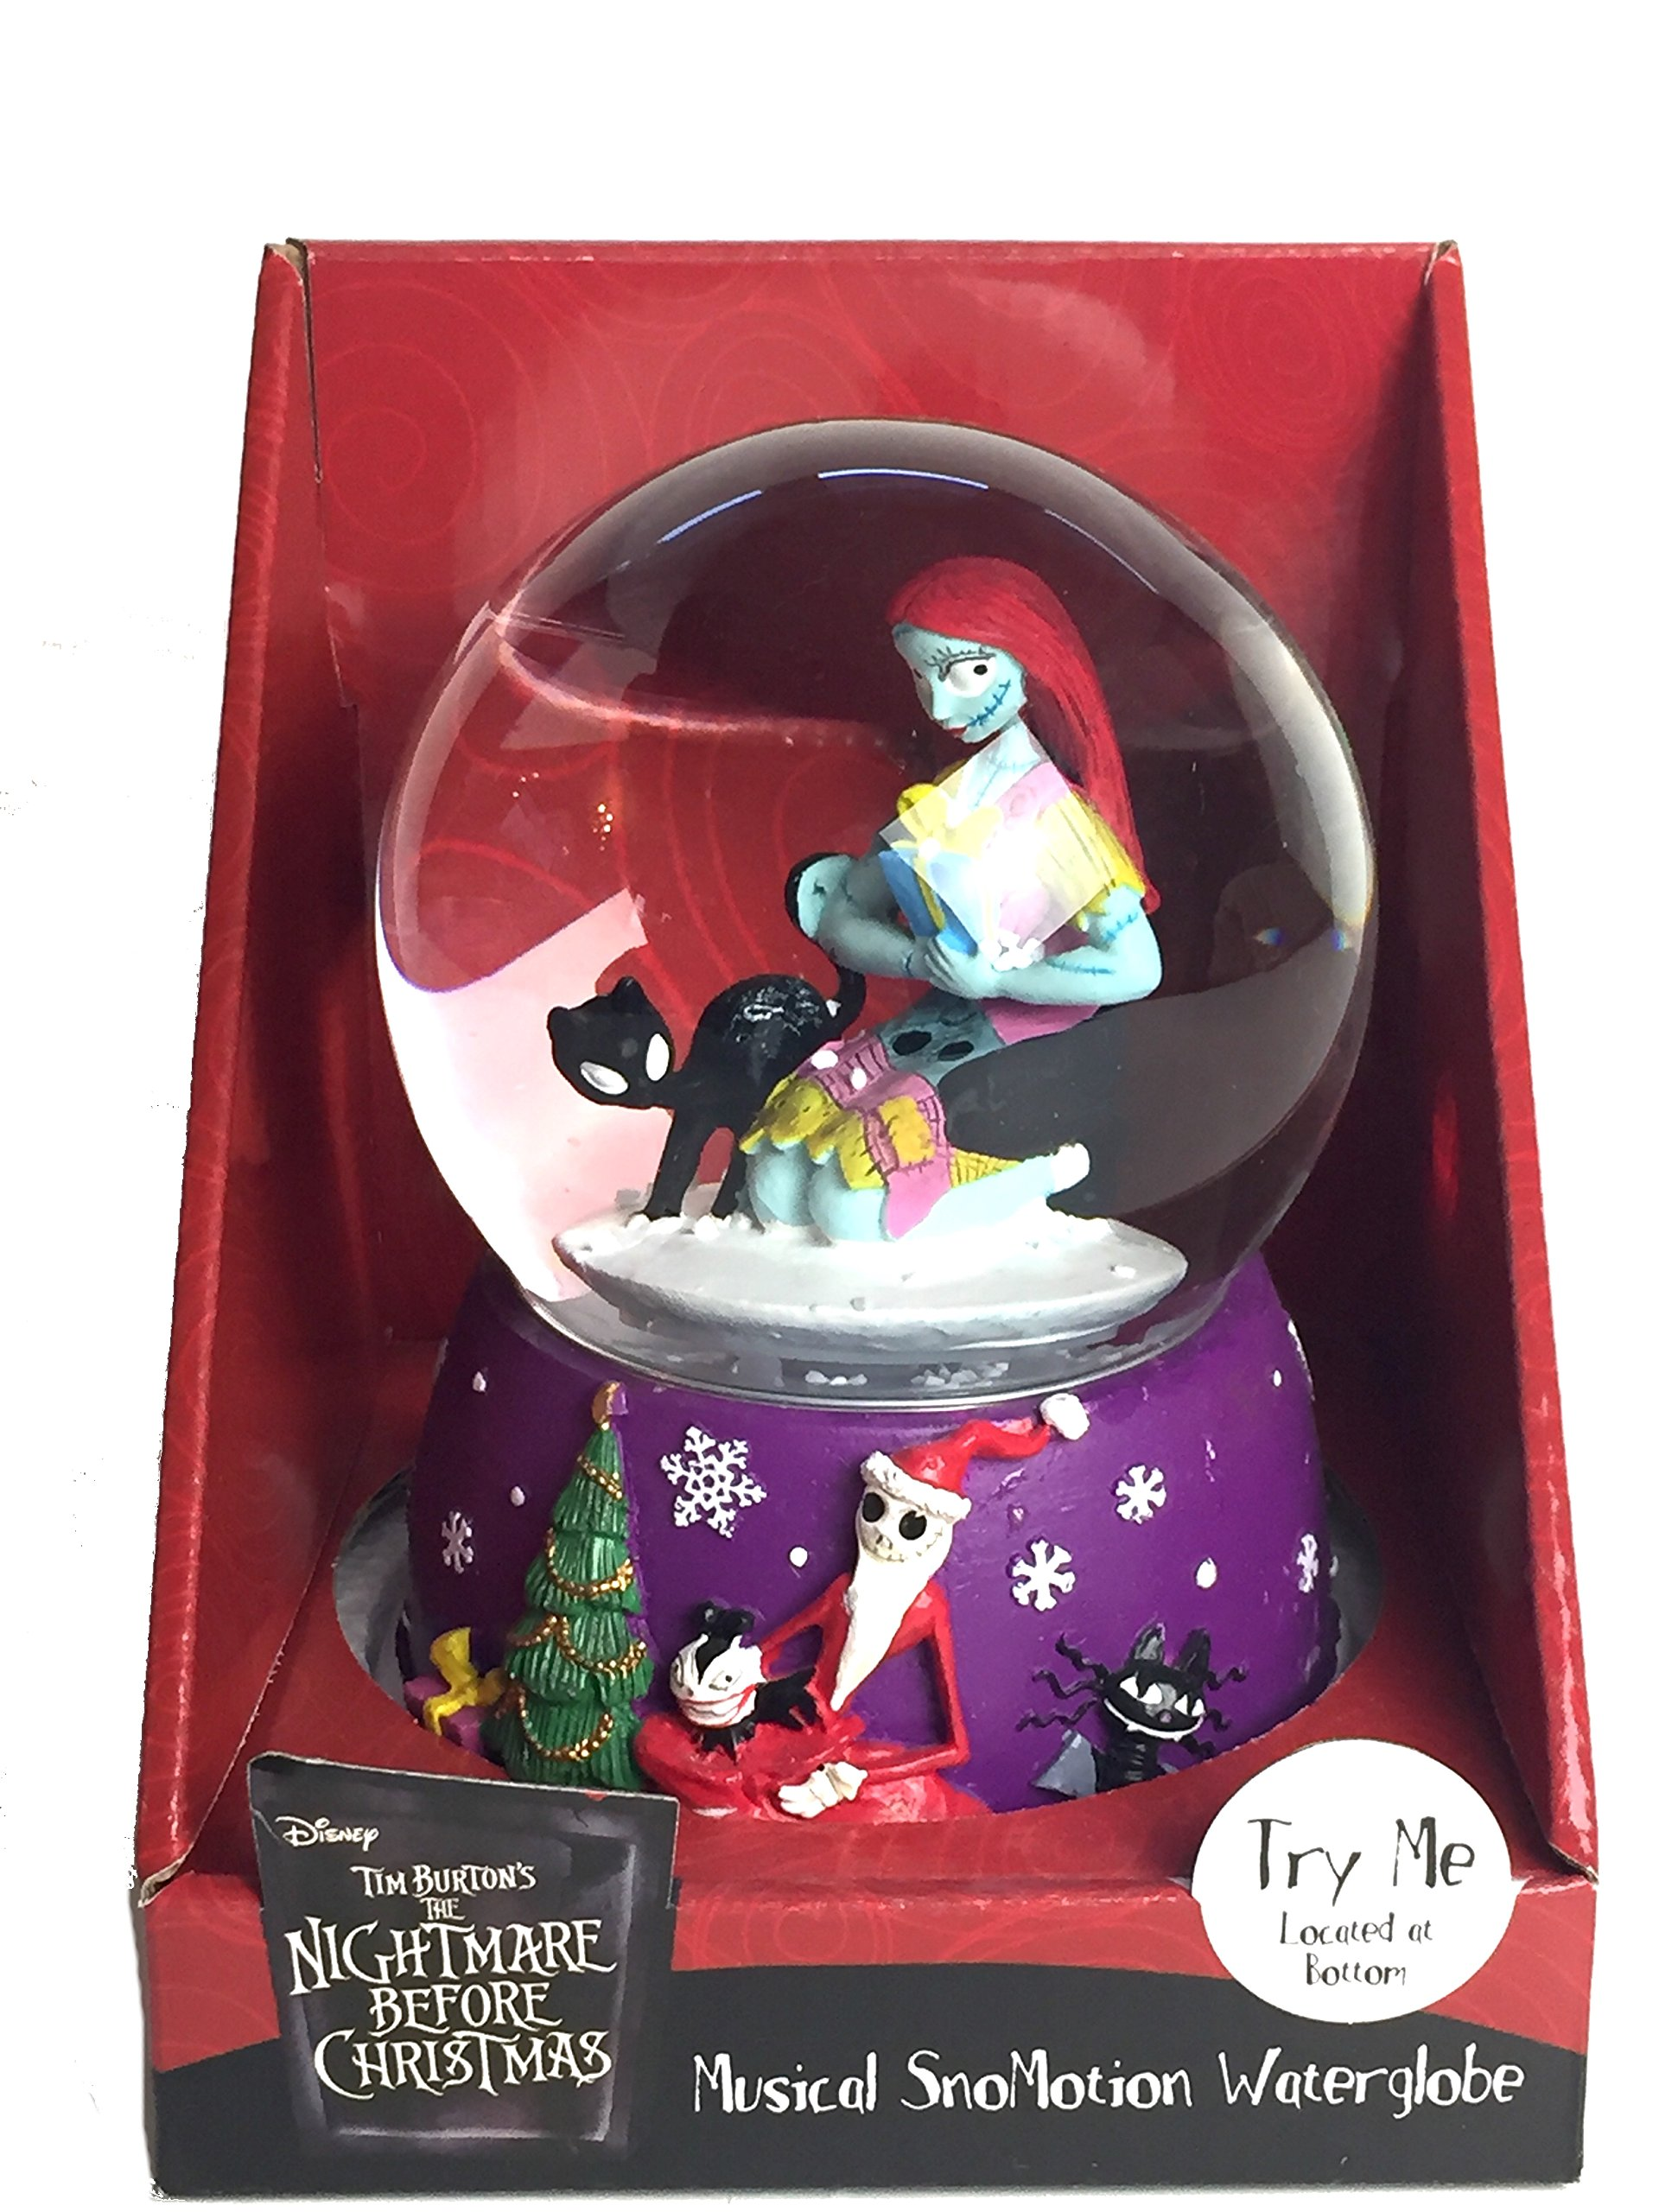 Sally and Black Cat Musical SnoMotion Waterglobe - Nightmare Before Christmas Snowglobe